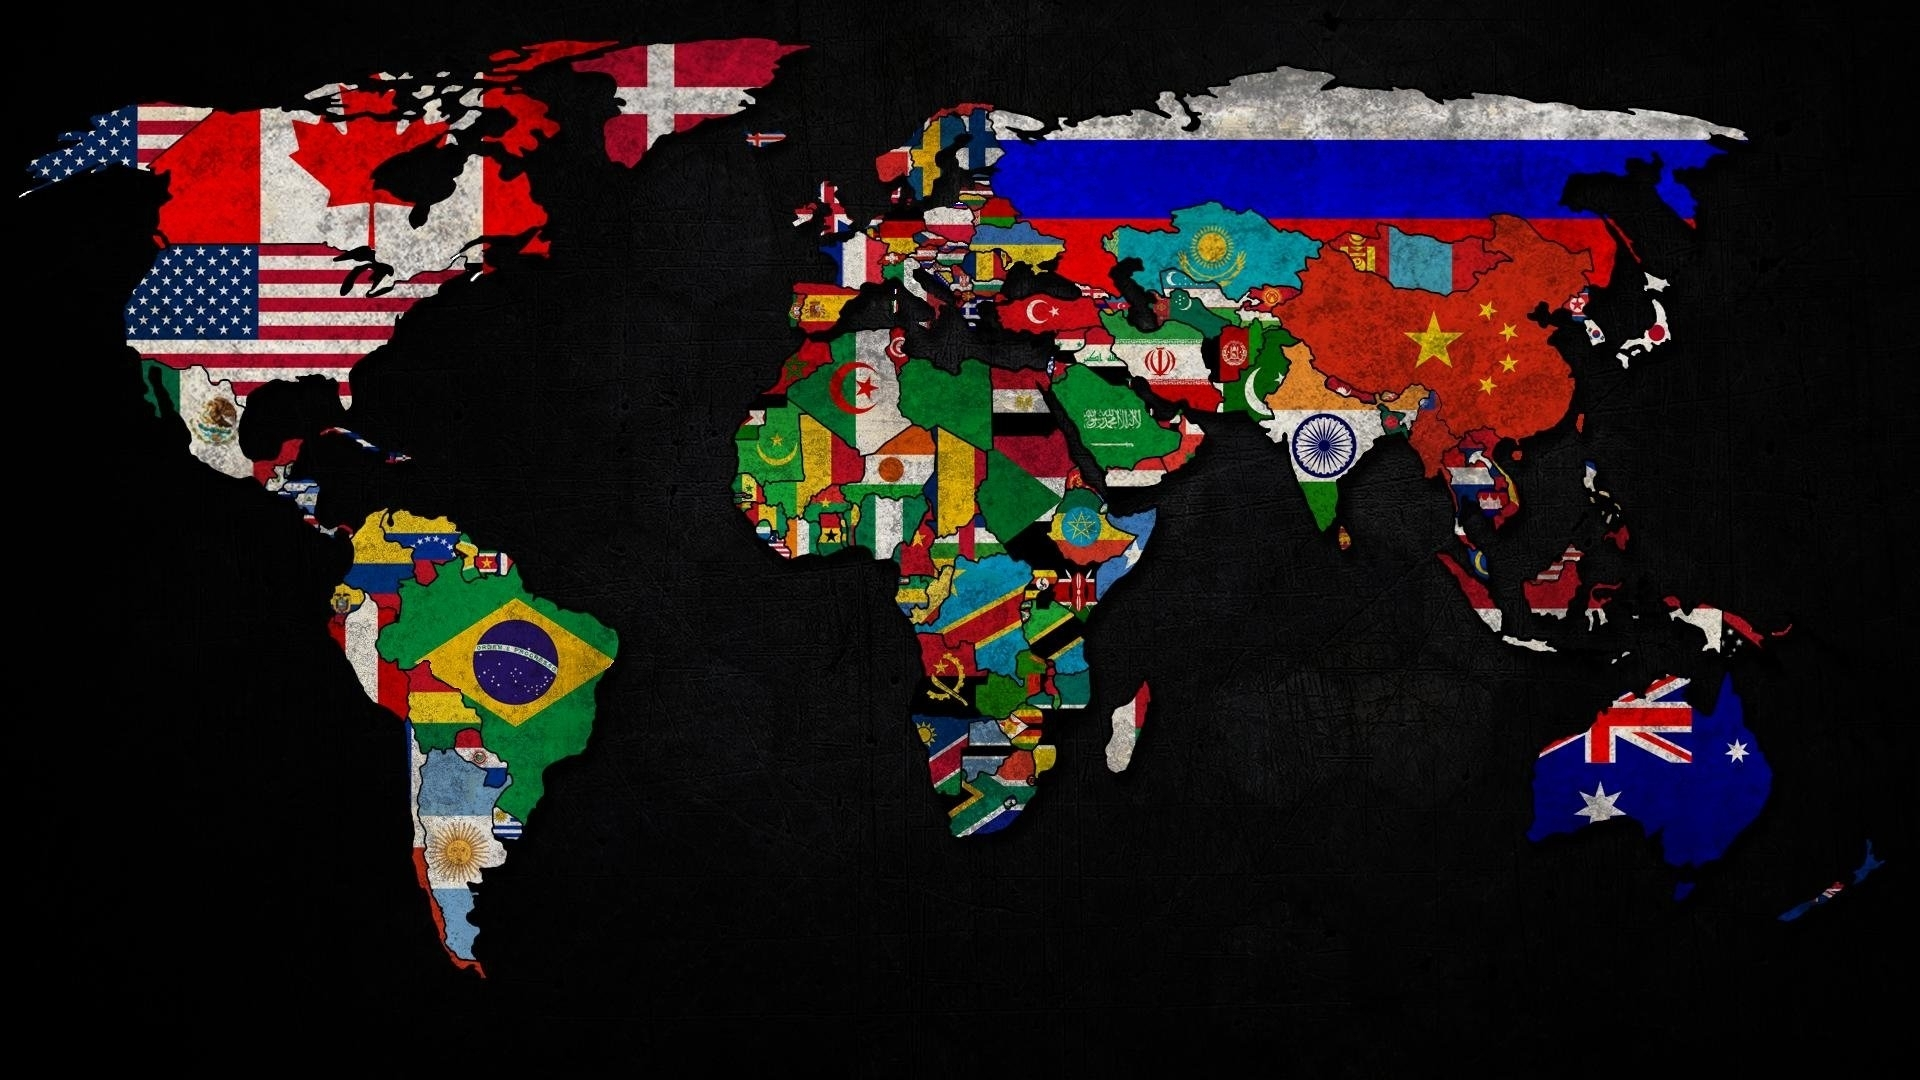 151 world map hd wallpapers | background images - wallpaper abyss